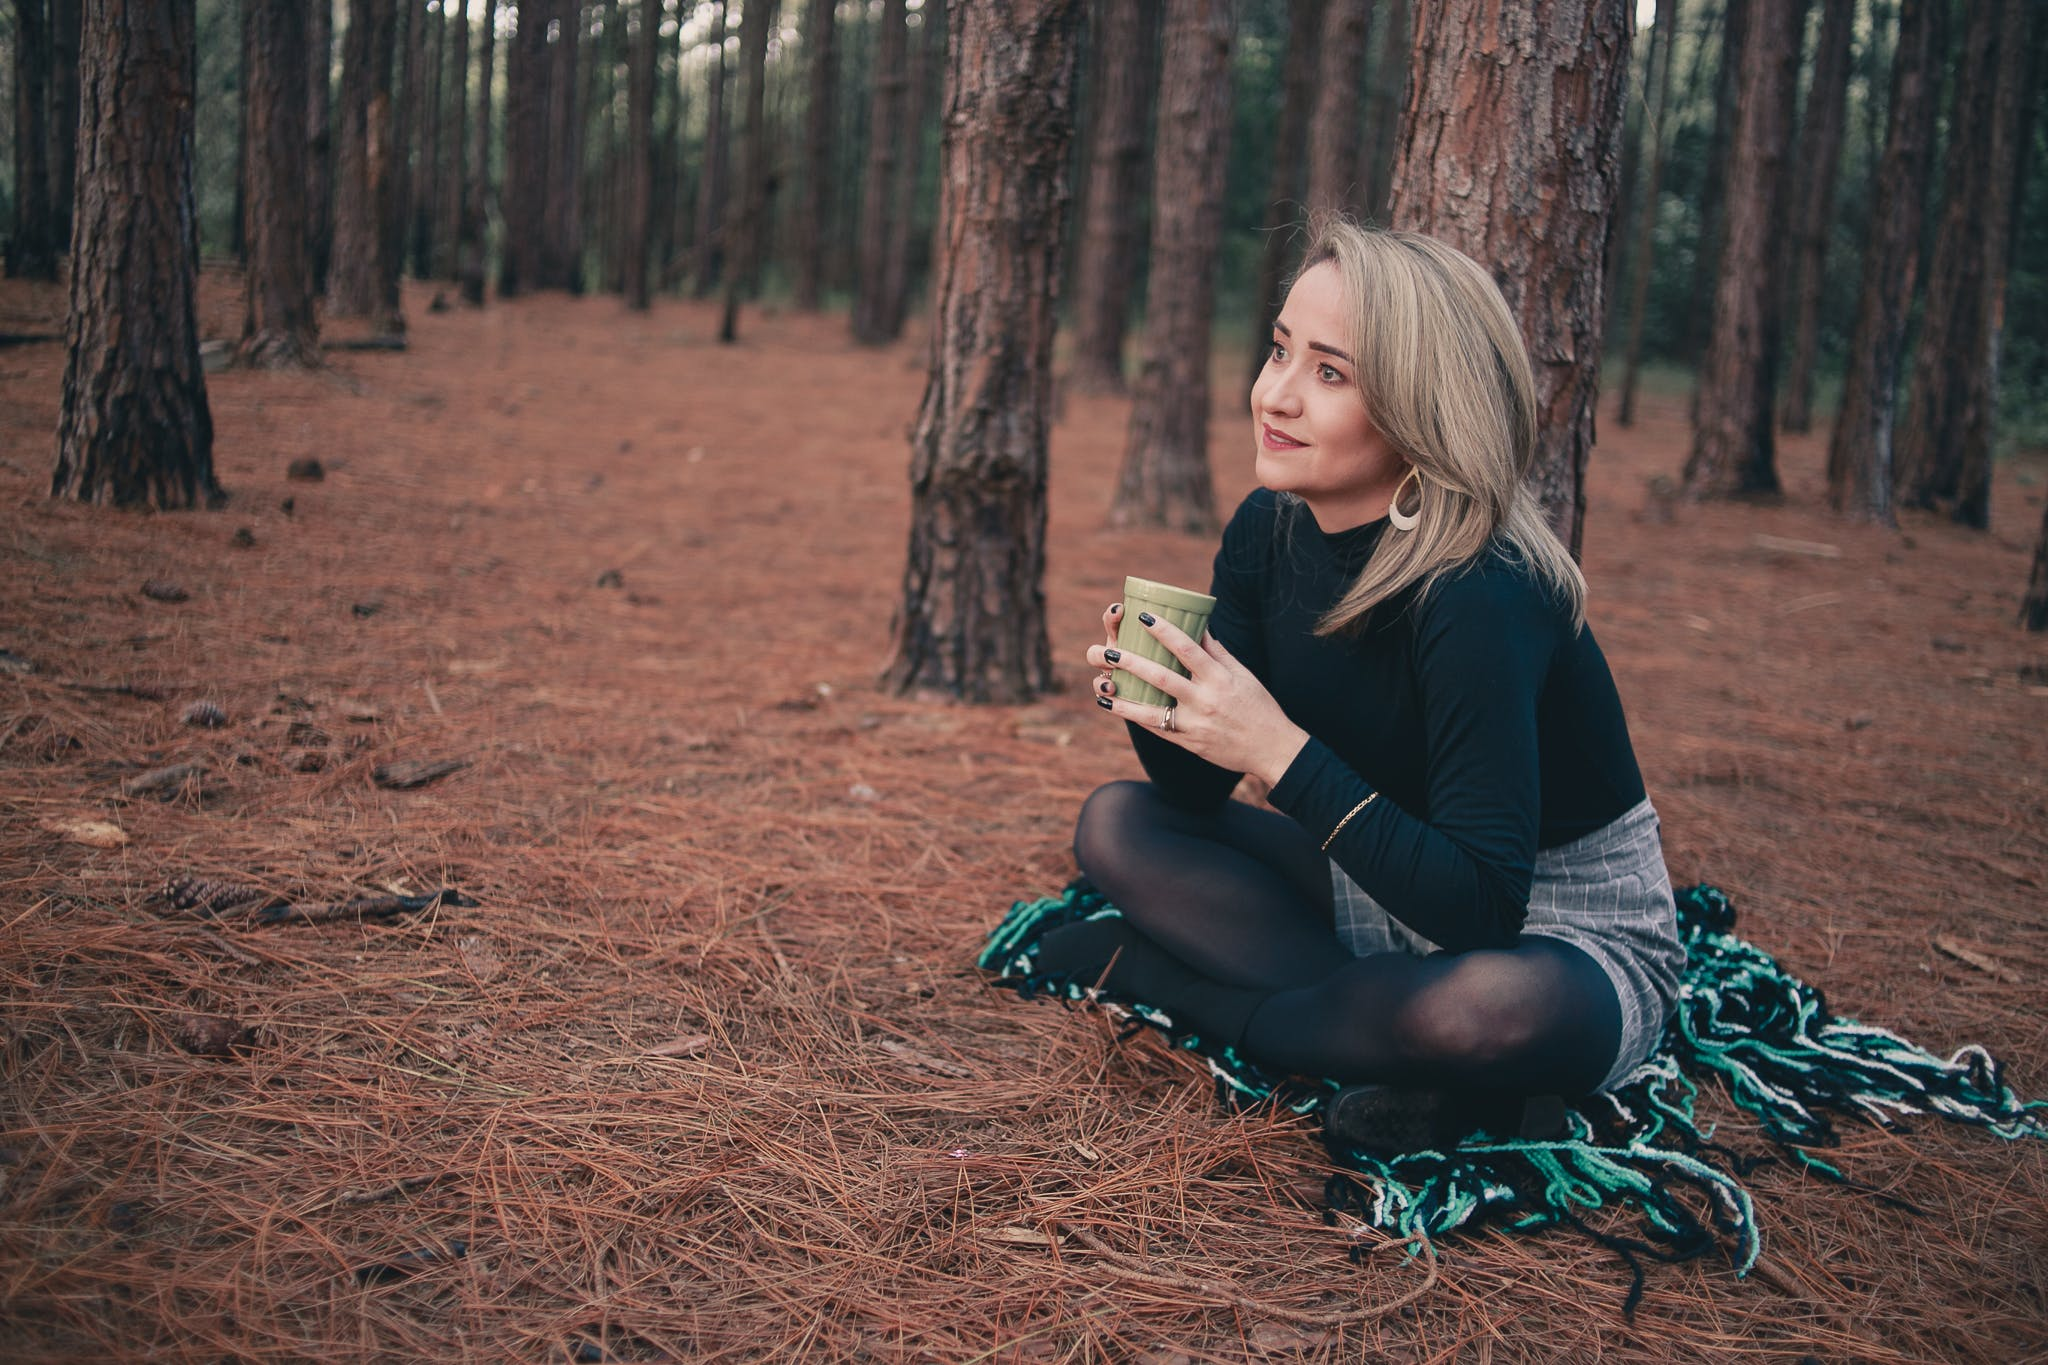 Woman in Black Sweater Sitting on Brown Ground While Holding Cup